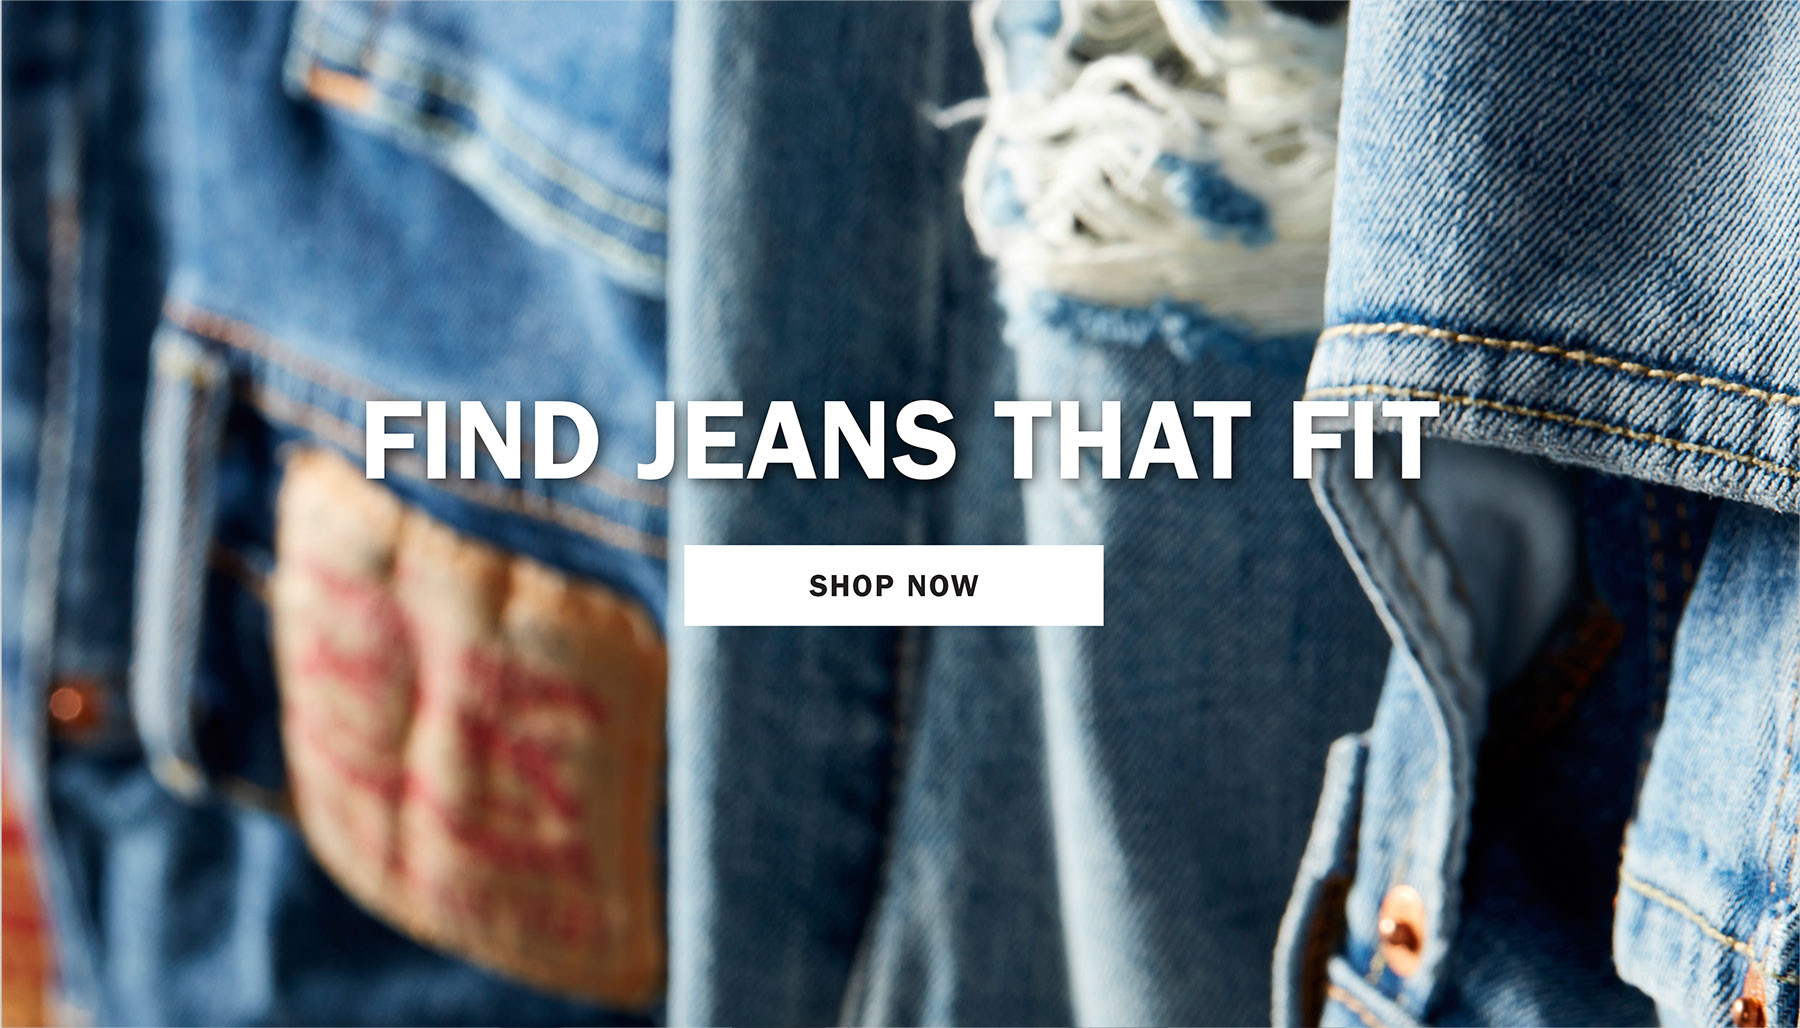 FIND JEANS THAT FIT | SHOP NOW